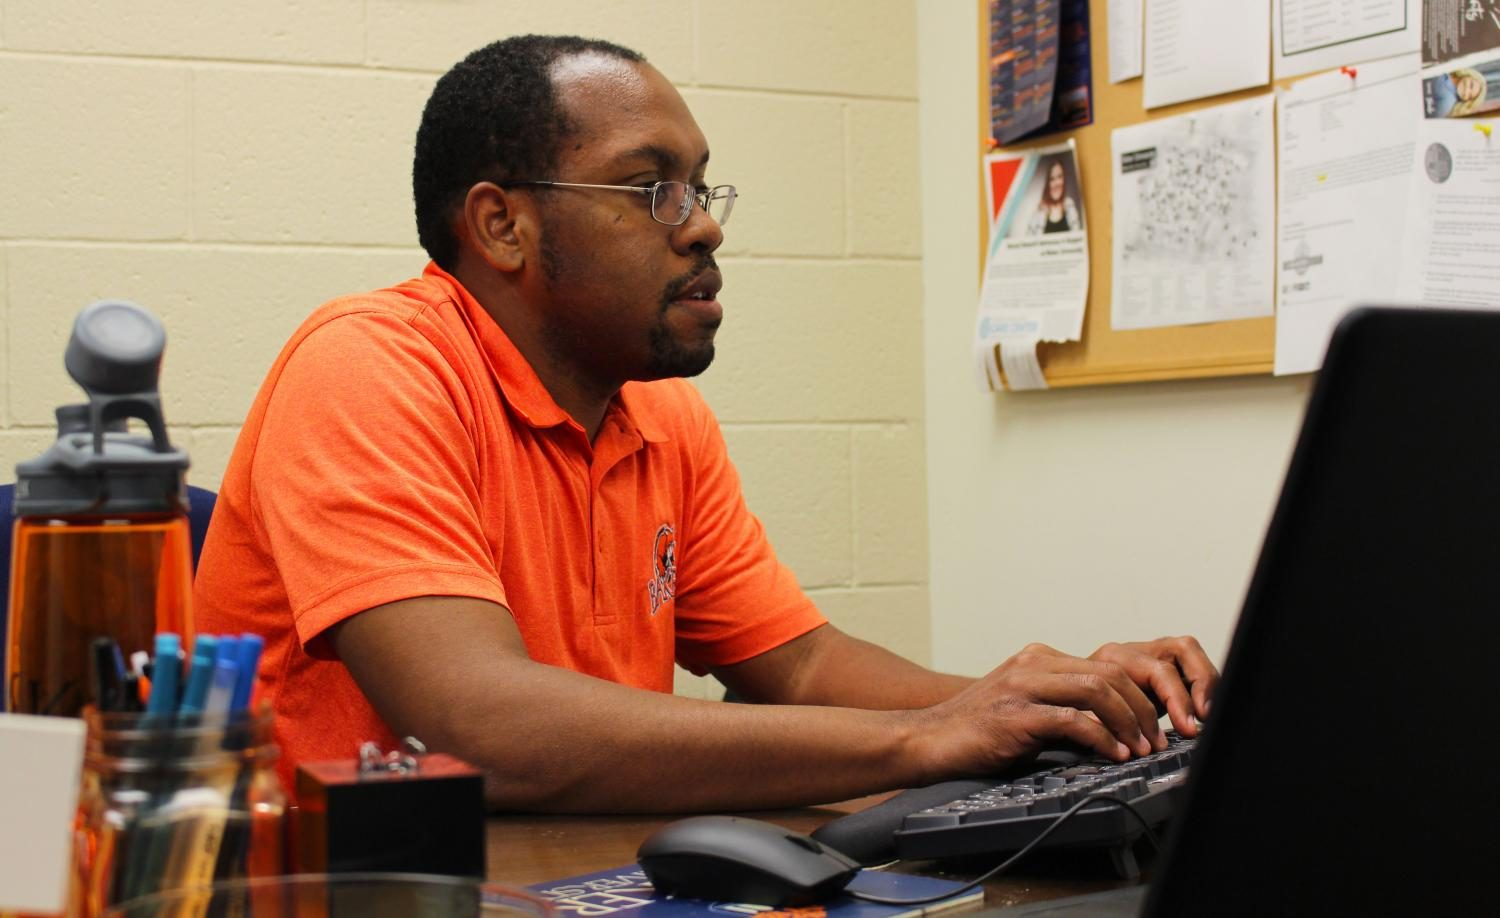 Coordinator of Inclusion and Wellness Education, Paul Ladipo, steps in the position with ideas in mind. Ladipo hopes to improve inclusion on Baker's campus.